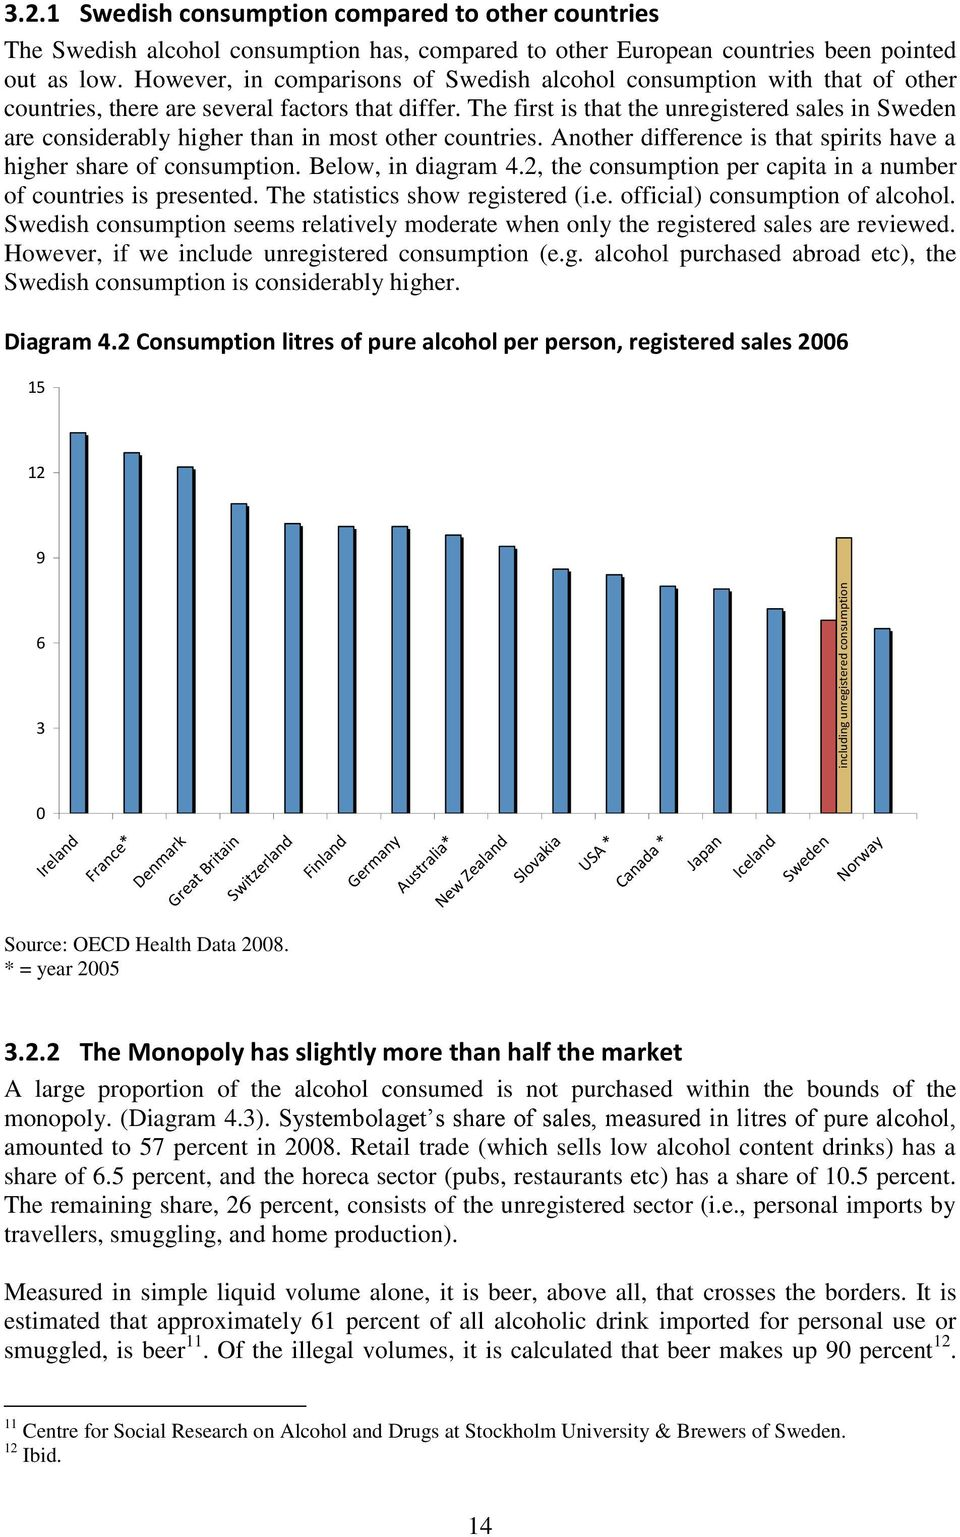 The first is that the unregistered sales in Sweden are considerably higher than in most other countries. Another difference is that spirits have a higher share of consumption. Below, in diagram 4.